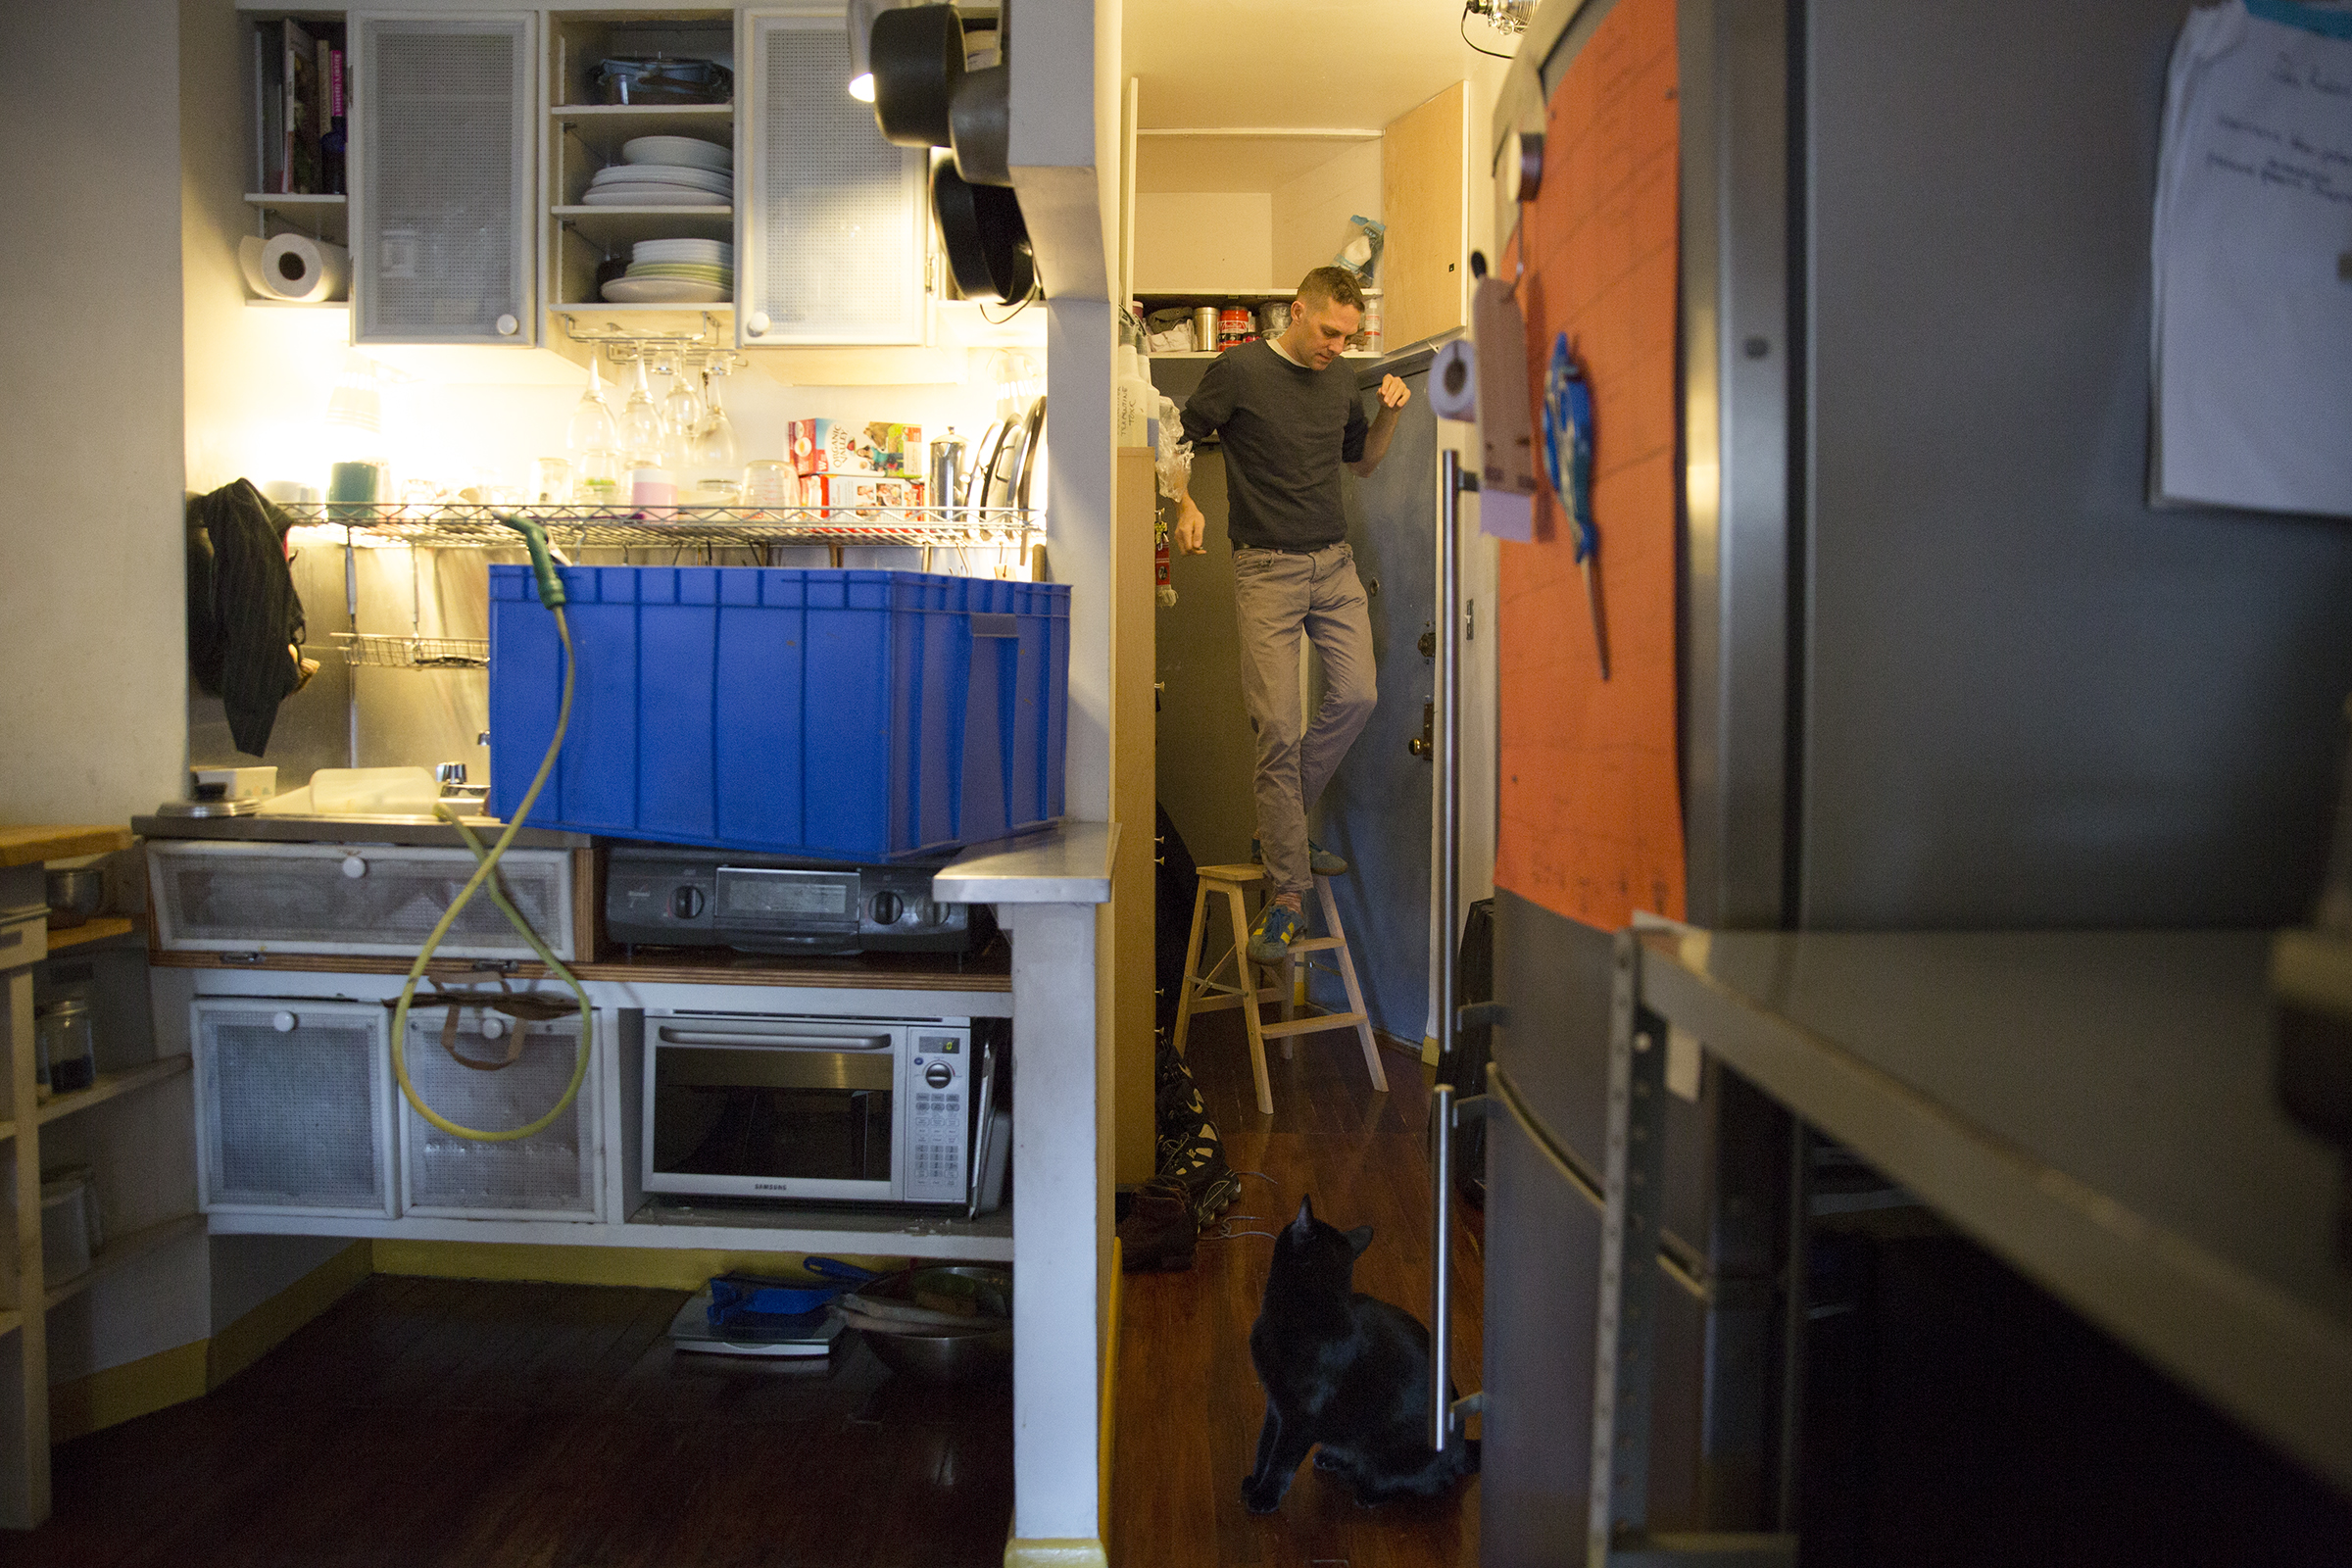 A blue storage bin doubles as a washing station, set up on the sink where Anselm has custom fit a rubber hose to fill it. He is in the back, getting supplies stored in a nook above his daughter's room.